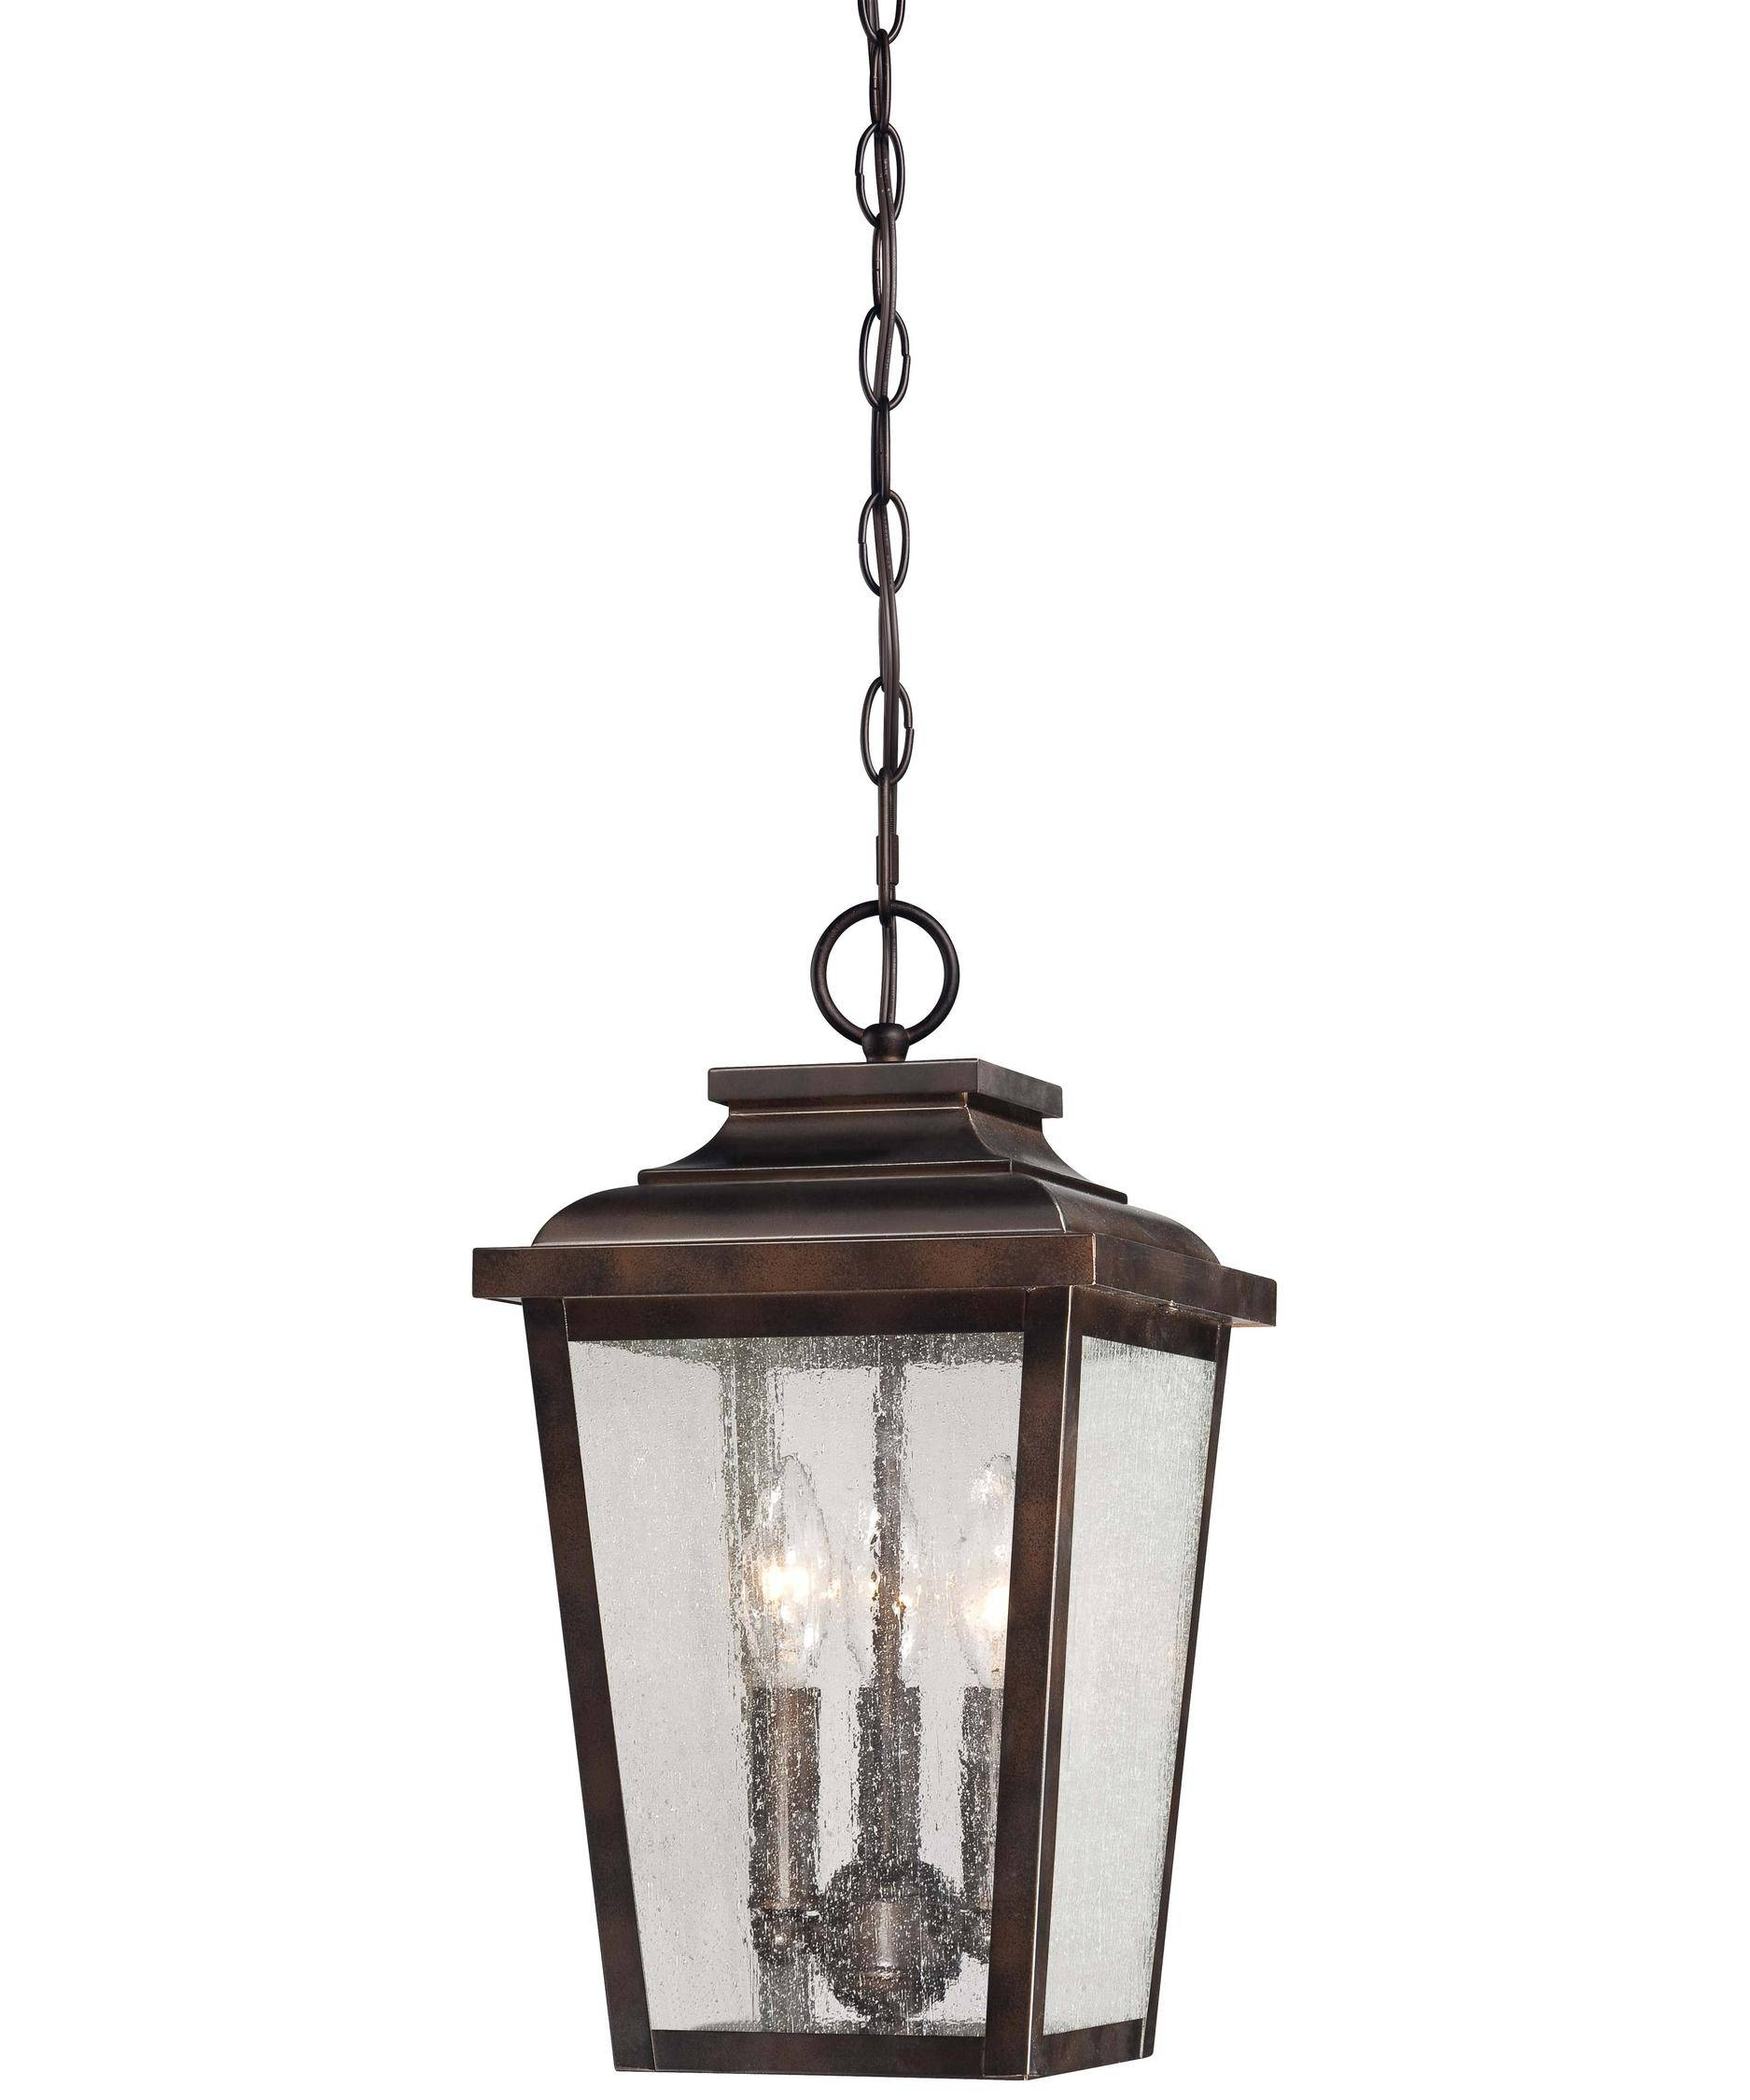 Great Outdoor Hanging Pendant Lights 48 In Mini Pendant Light Pertaining To Mini Lantern Pendant Lights (View 8 of 15)